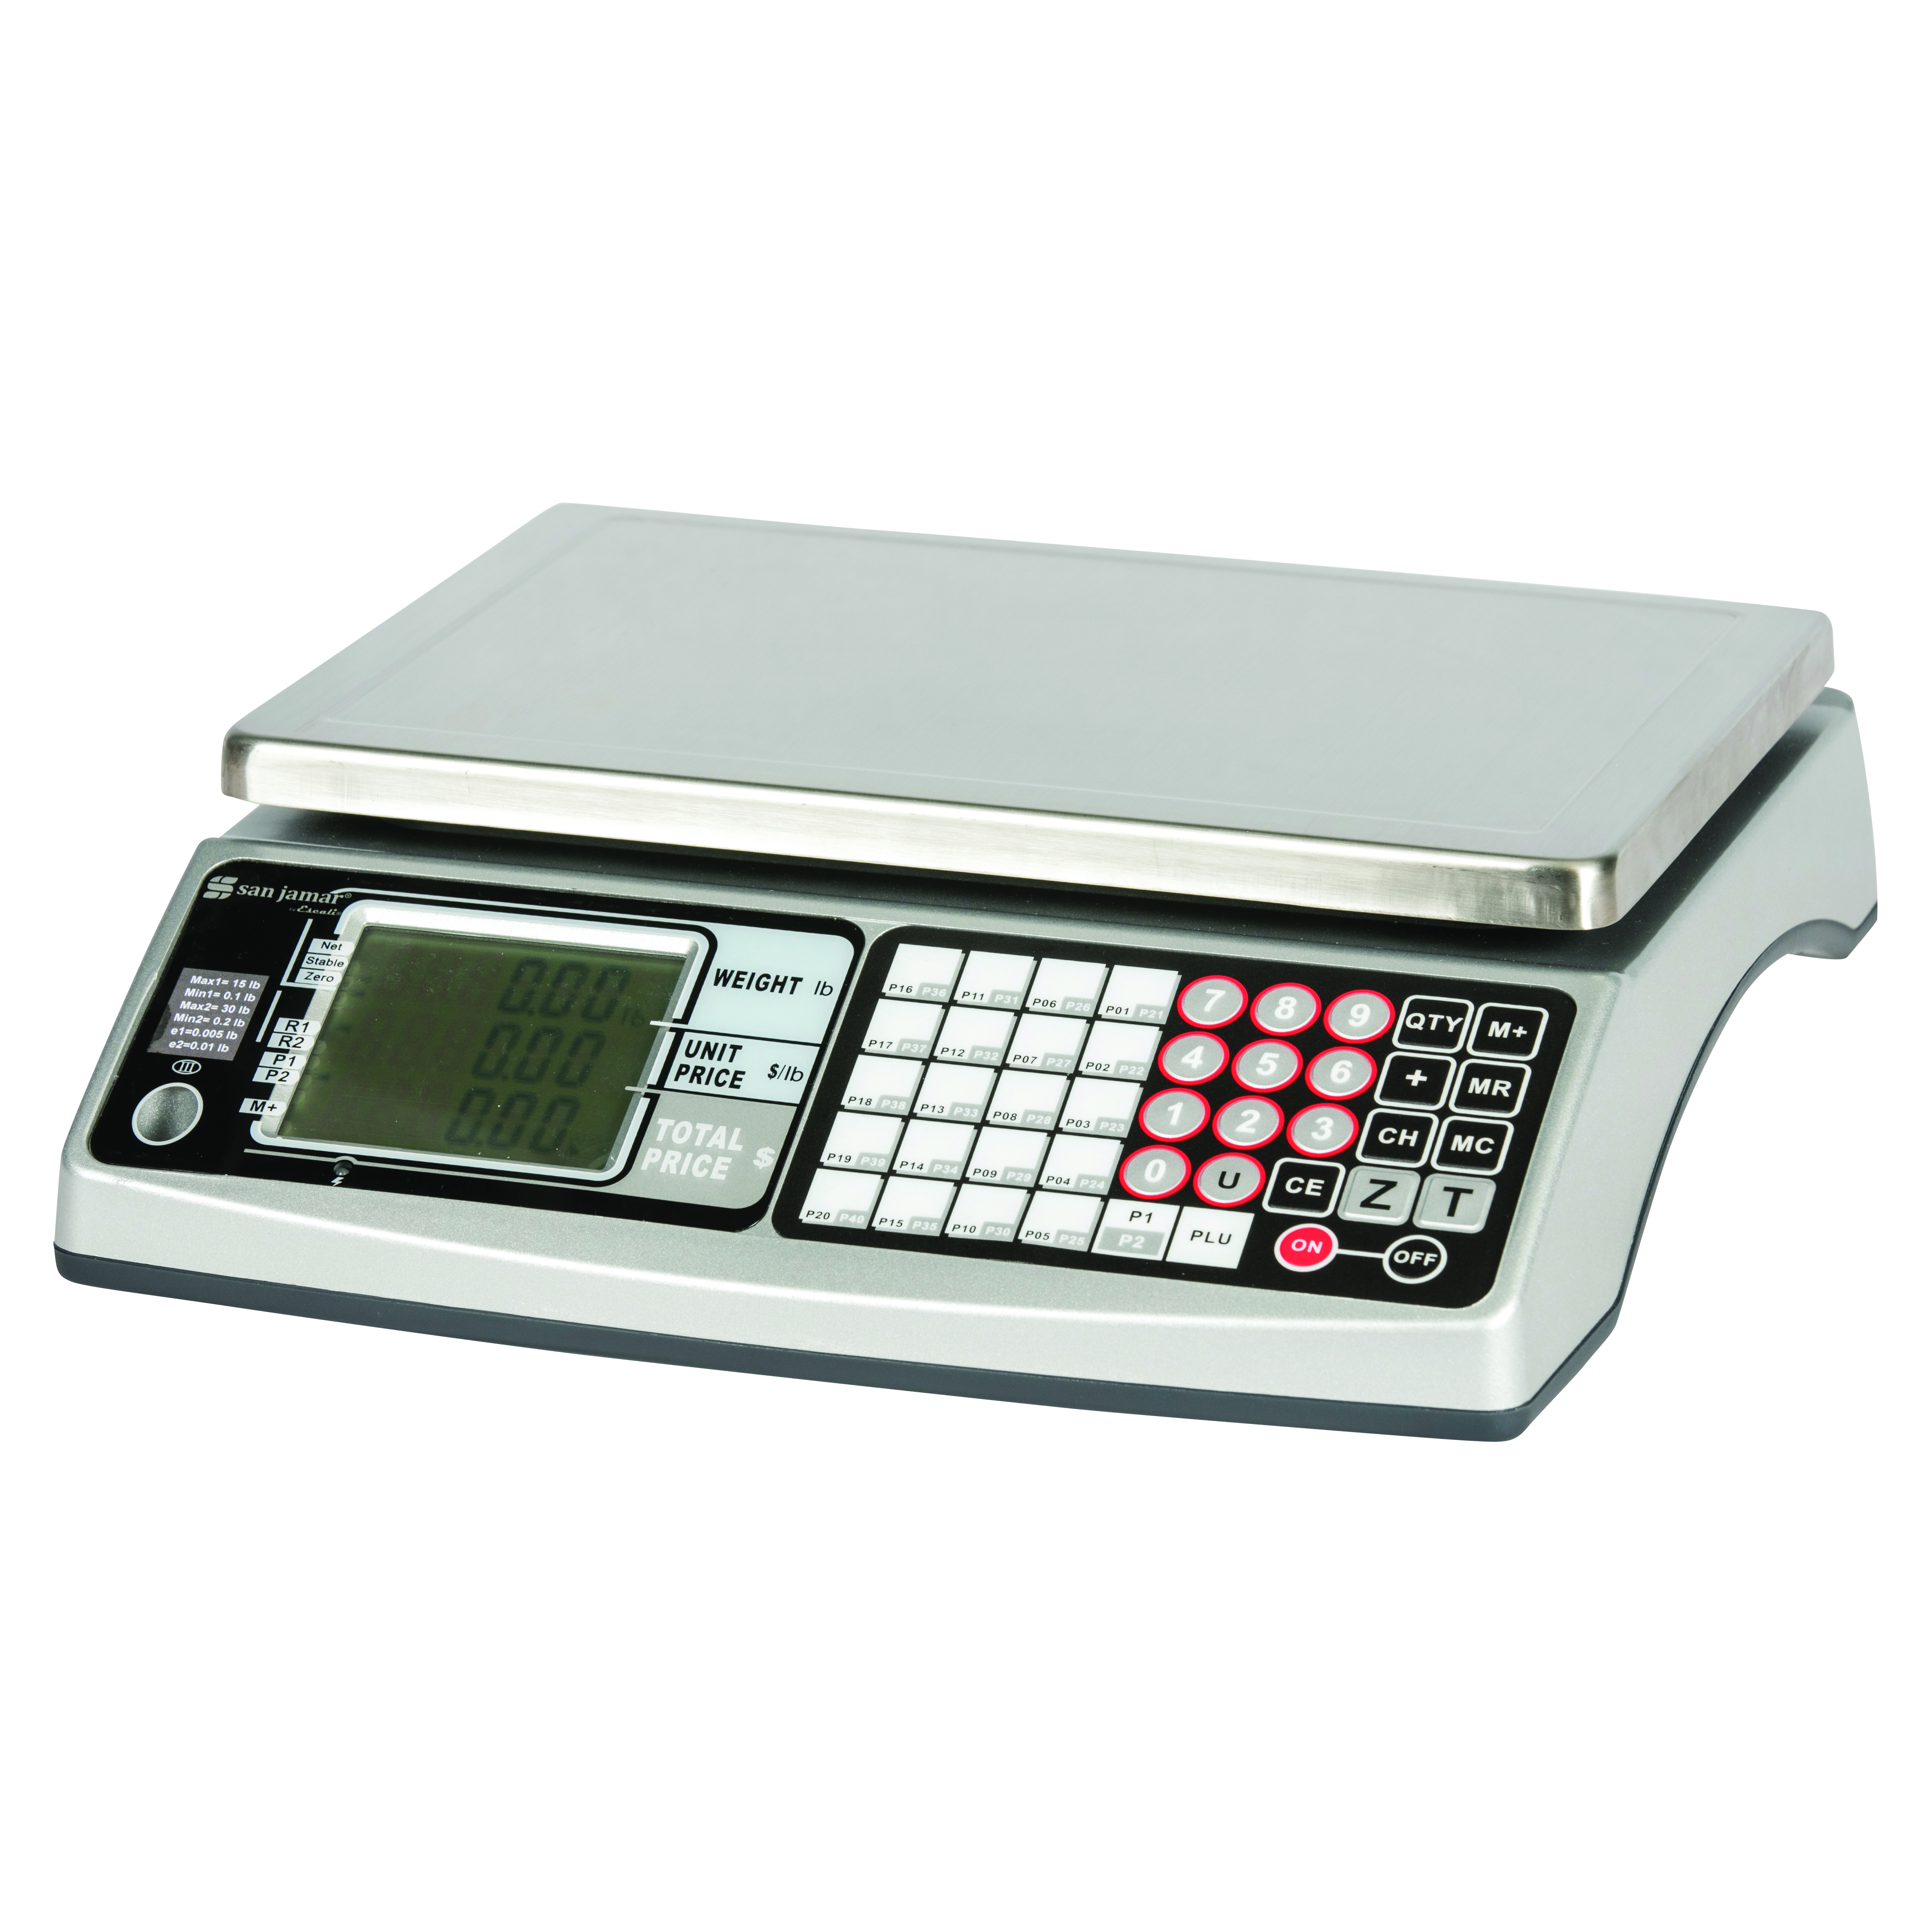 San Jamar SCDG30LFT scale, price computing